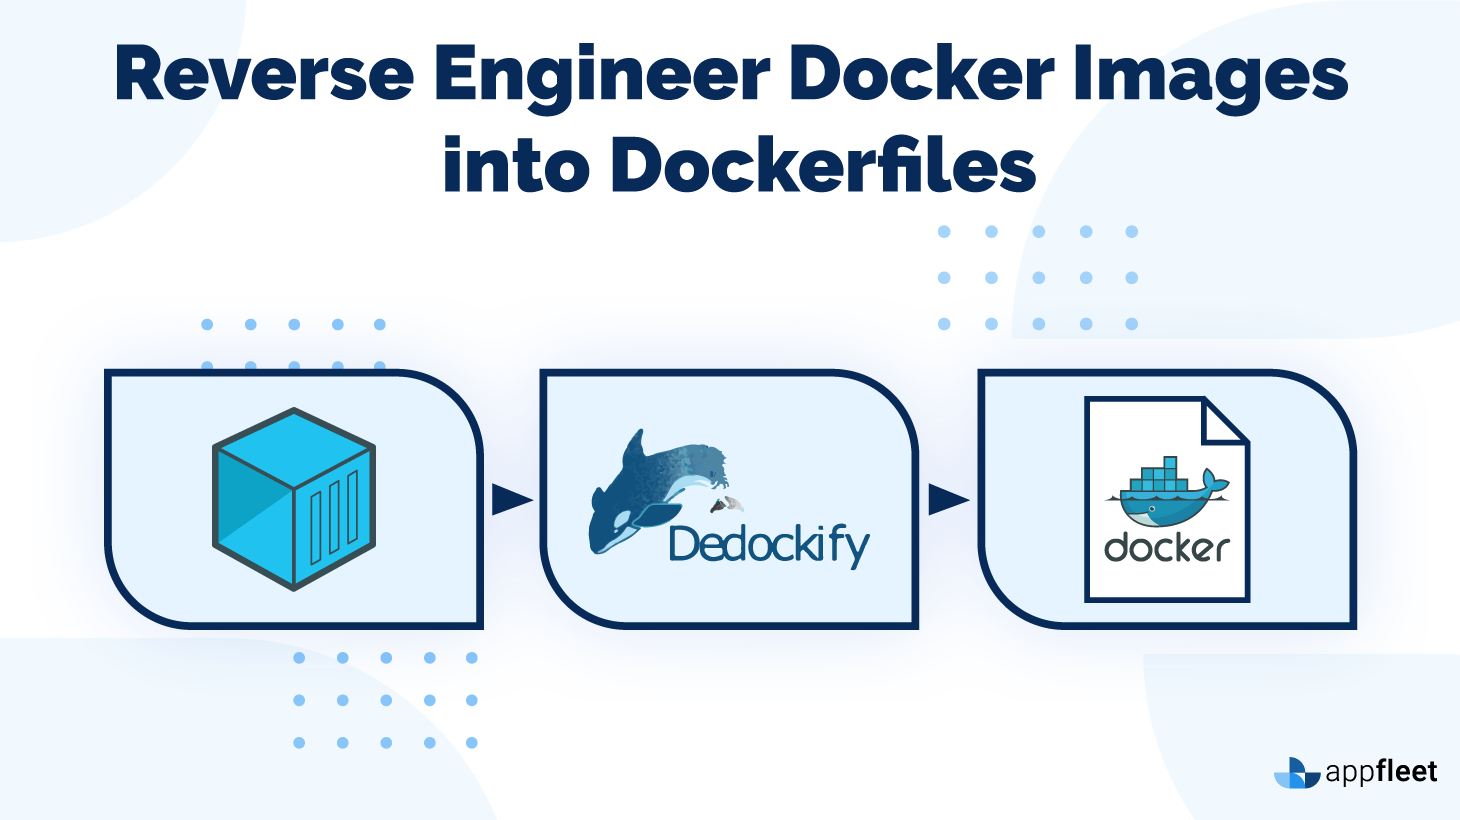 Reverse Engineer Docker Images into Dockerfiles